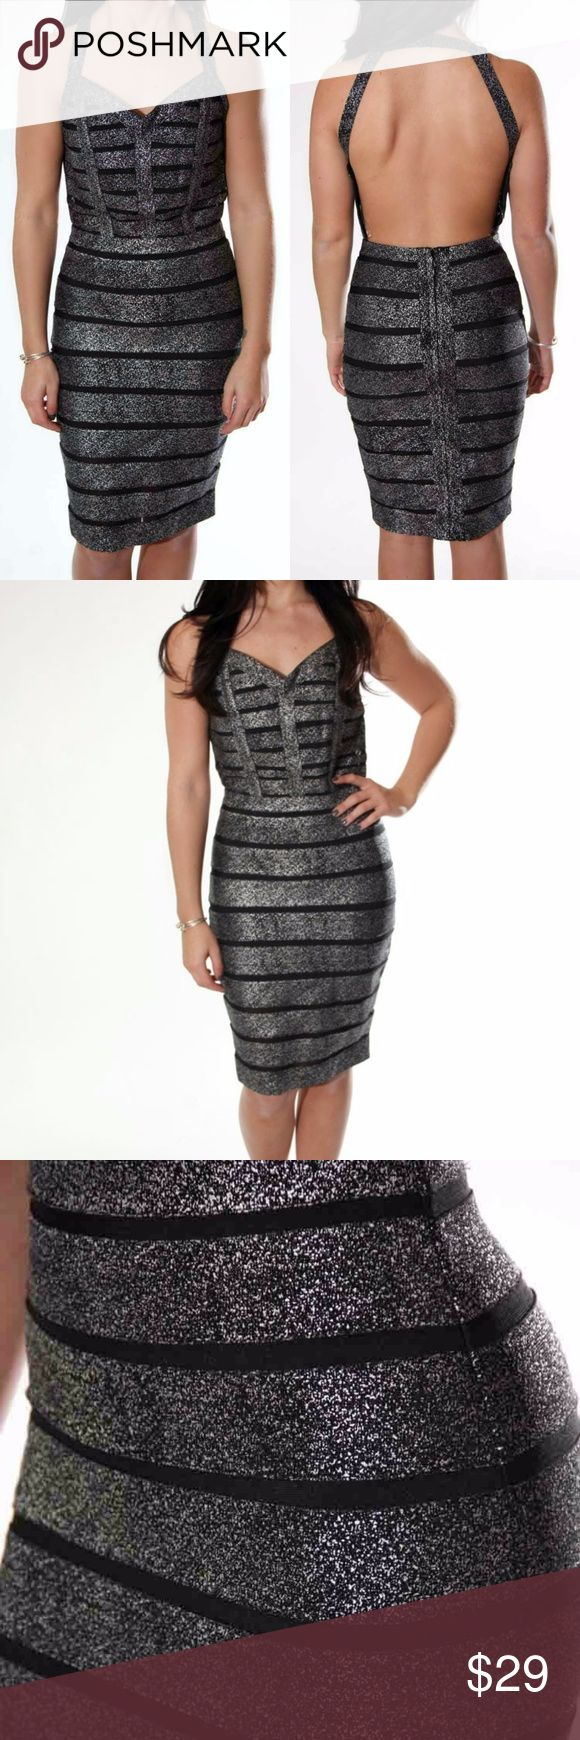 """Speckled Bandage Midi Dress Speckled silver bodycon dress with mesh lines running horizontally throughout the bodice, halter neck, and sultry open back. Hidden back zipper.   Unlined Bodycon 90% Polyester. 10% Spandex. Hand wash Measured from a small. 35 ½"""" Full length. 29"""" Bust. 25"""" Waist. Model is wearing a small. Her measurements are: Height 5'2"""" 